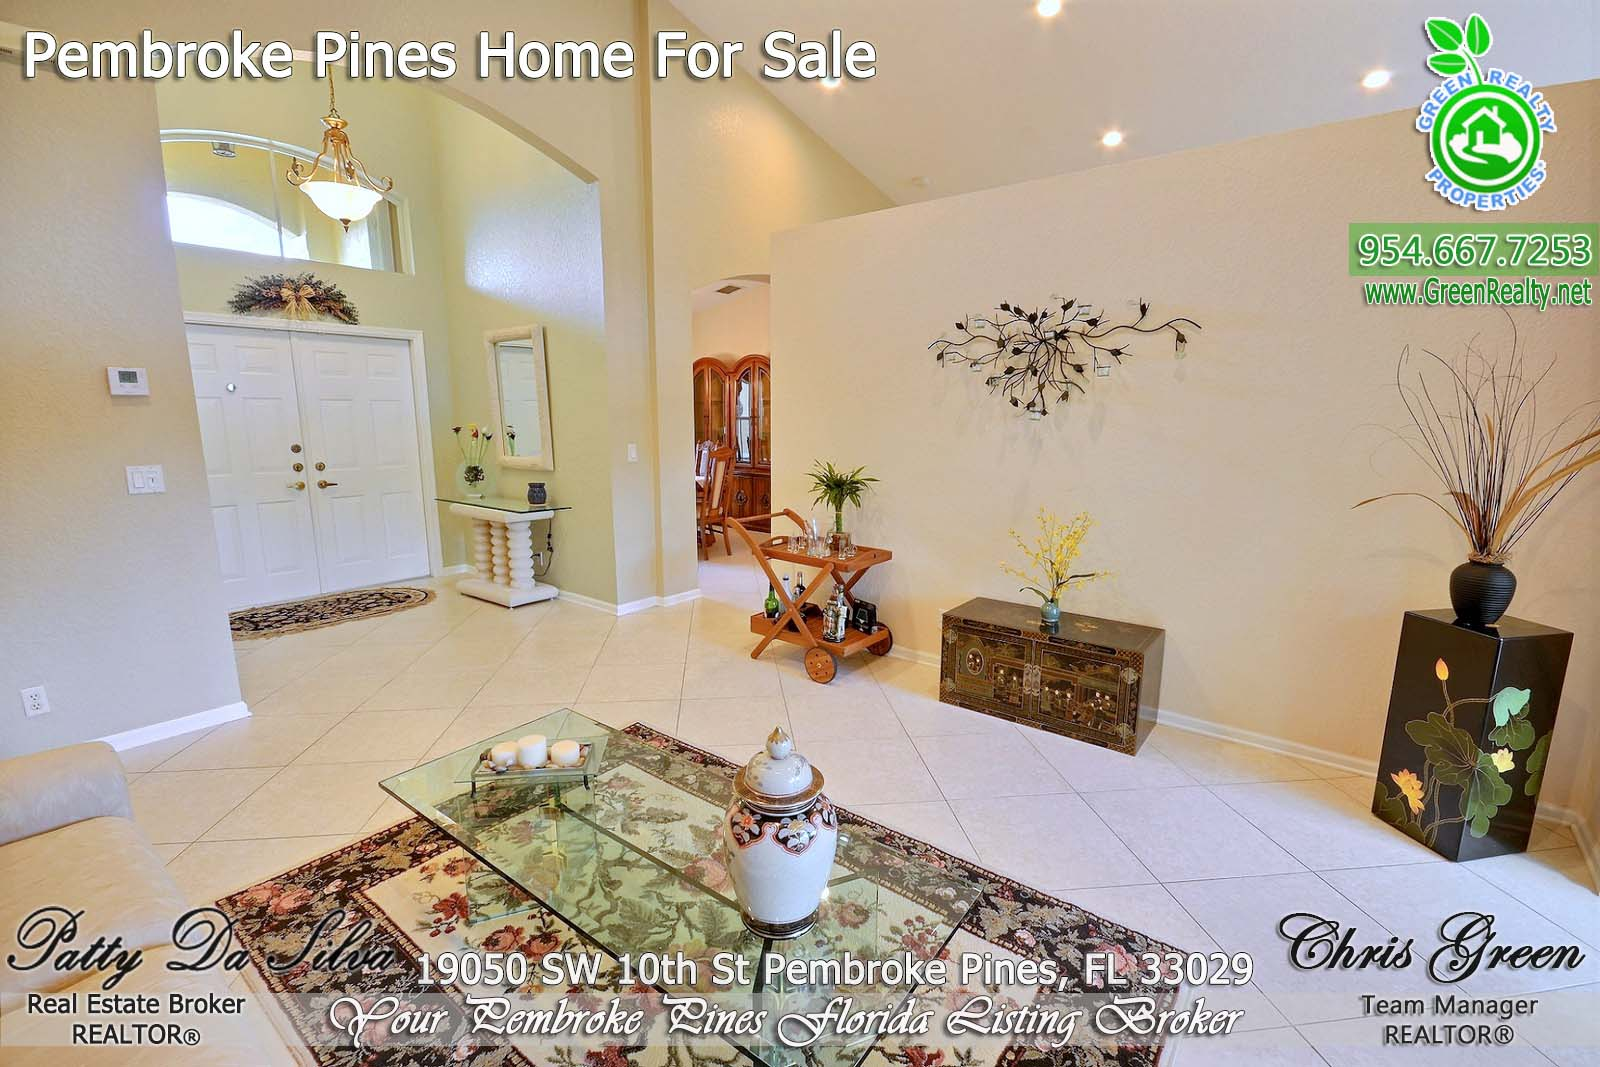 5 Homes For Sale in Pembroke Pines (3)